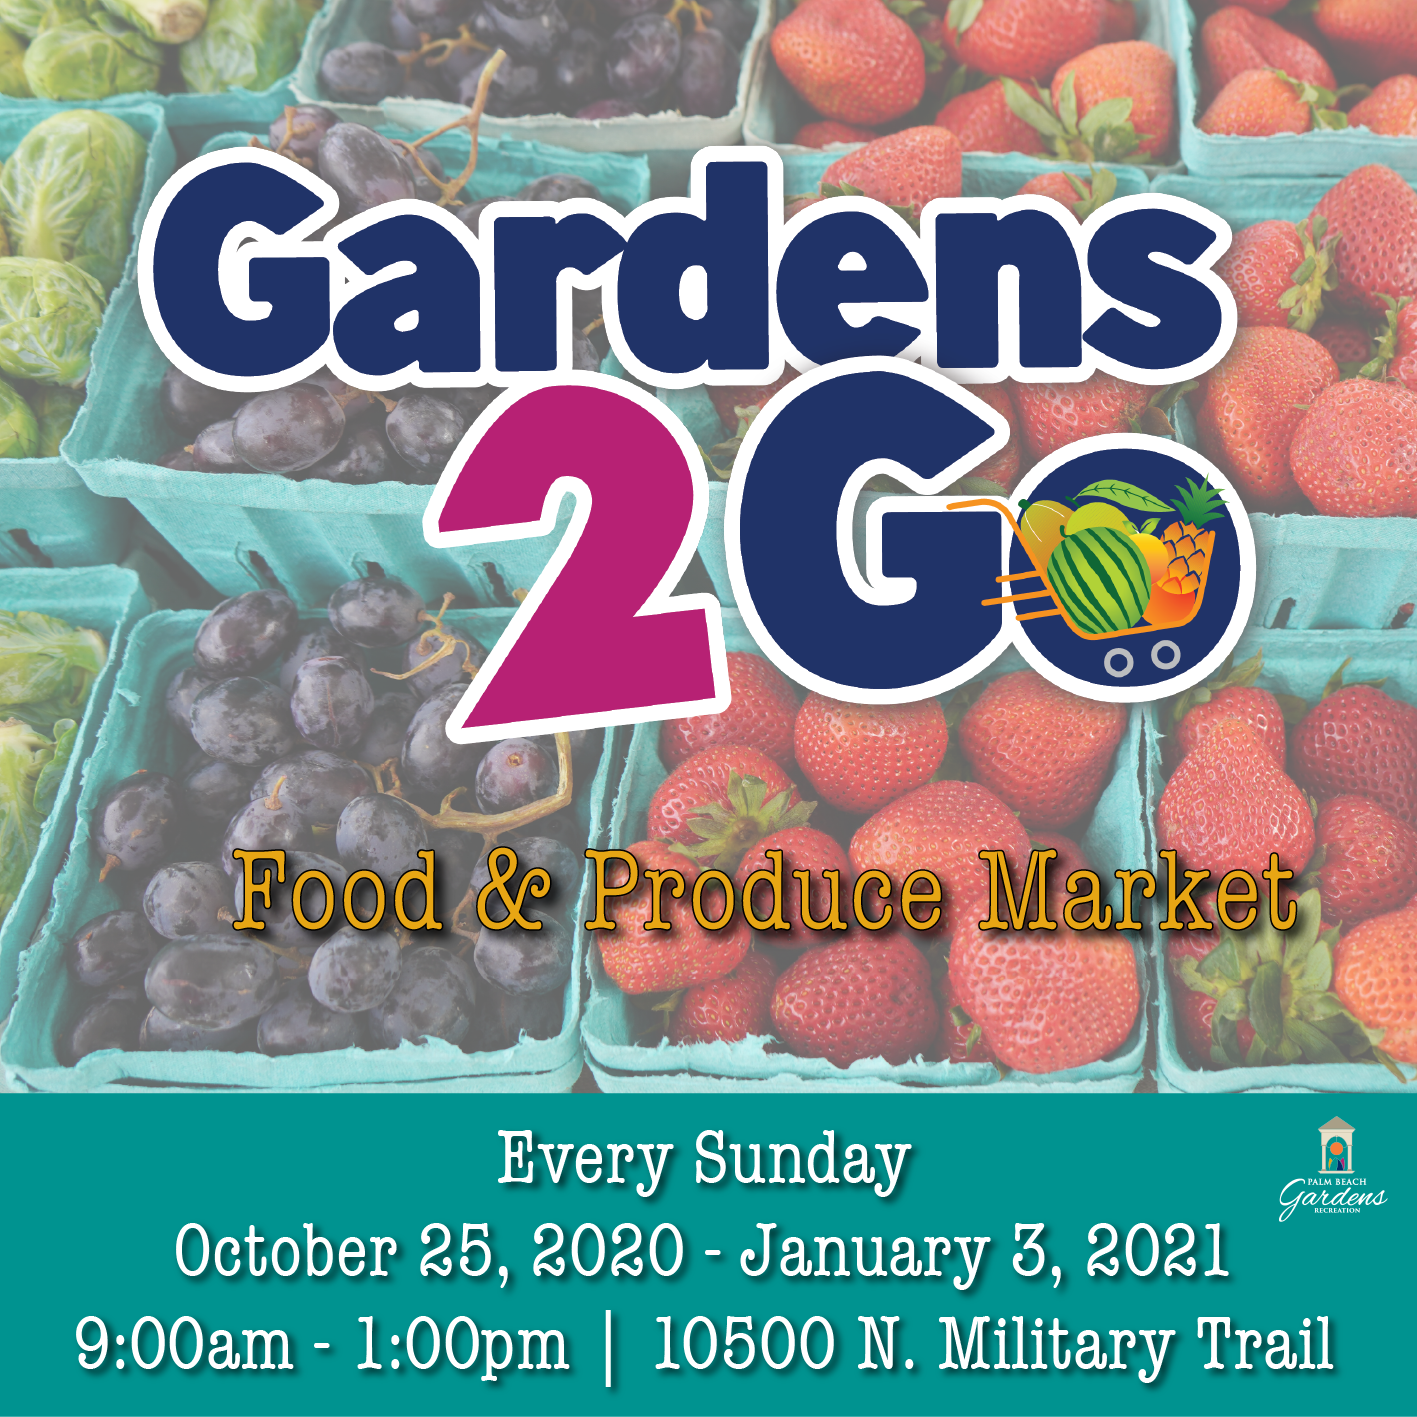 Gardens 2 Go Food & Produce Market. Sundays, Oct. 25 thru Jan 3. 9am to 1pm.